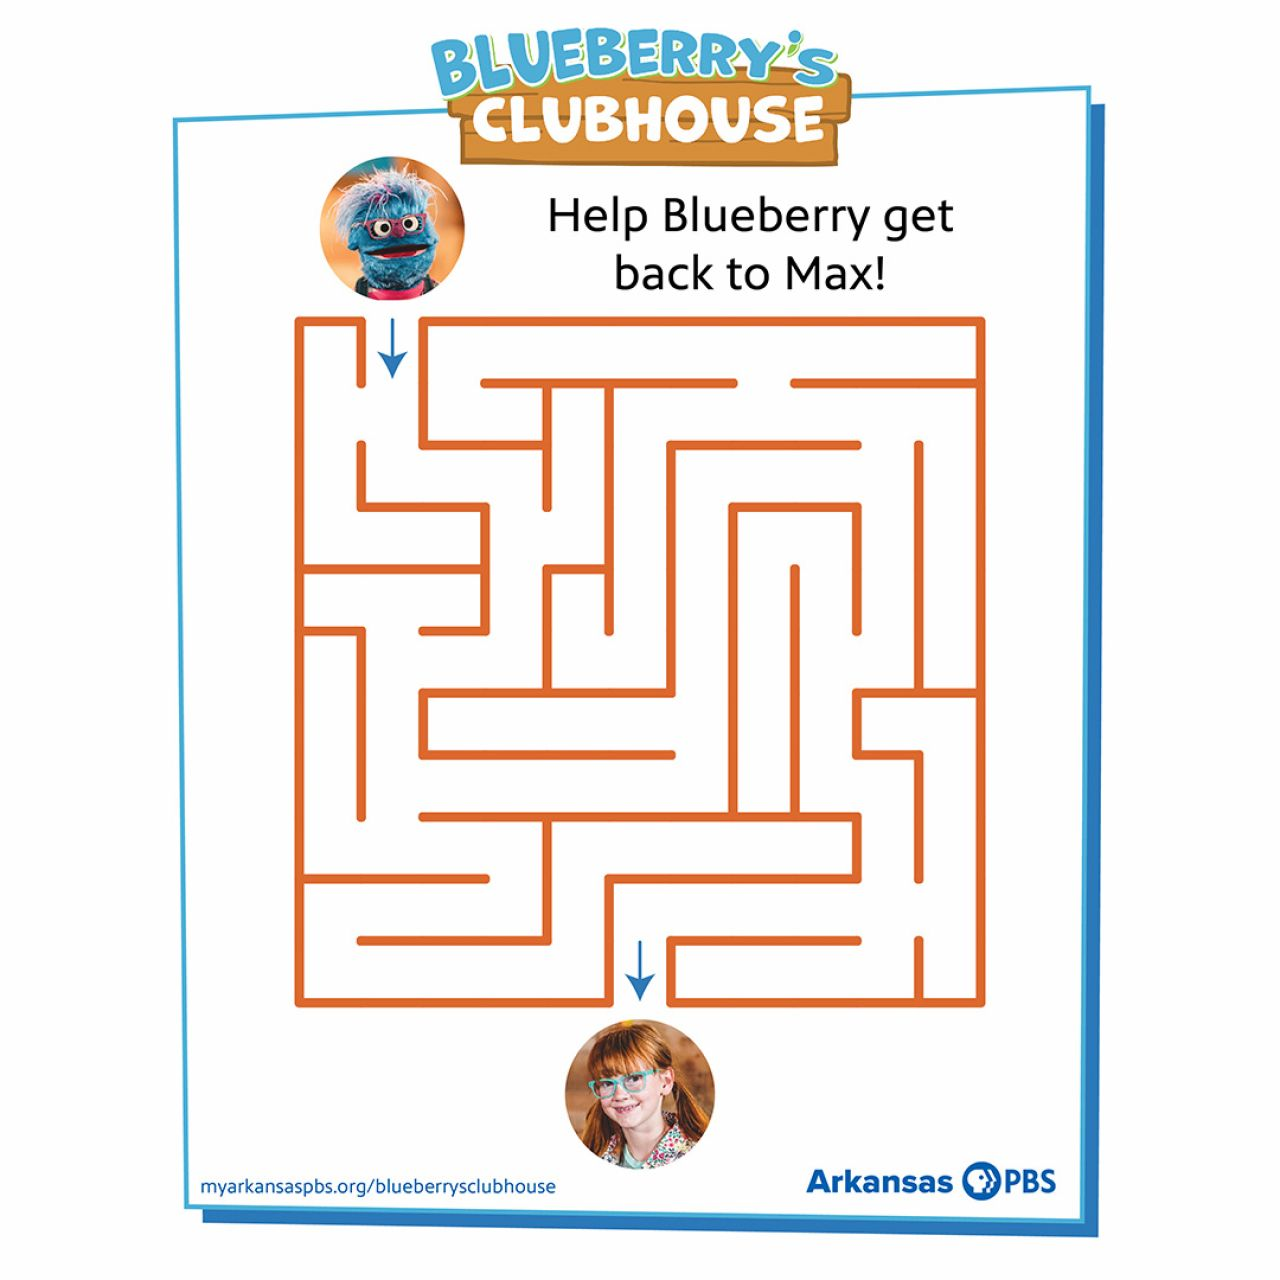 Orange maze with a photo of Blueberry at the top and Max at the end inside a blue frame with Blueberry's Clubhouse logo at top center, instructions in the margin and Blueberry's Clubhouse website and AR PBS Logo at base